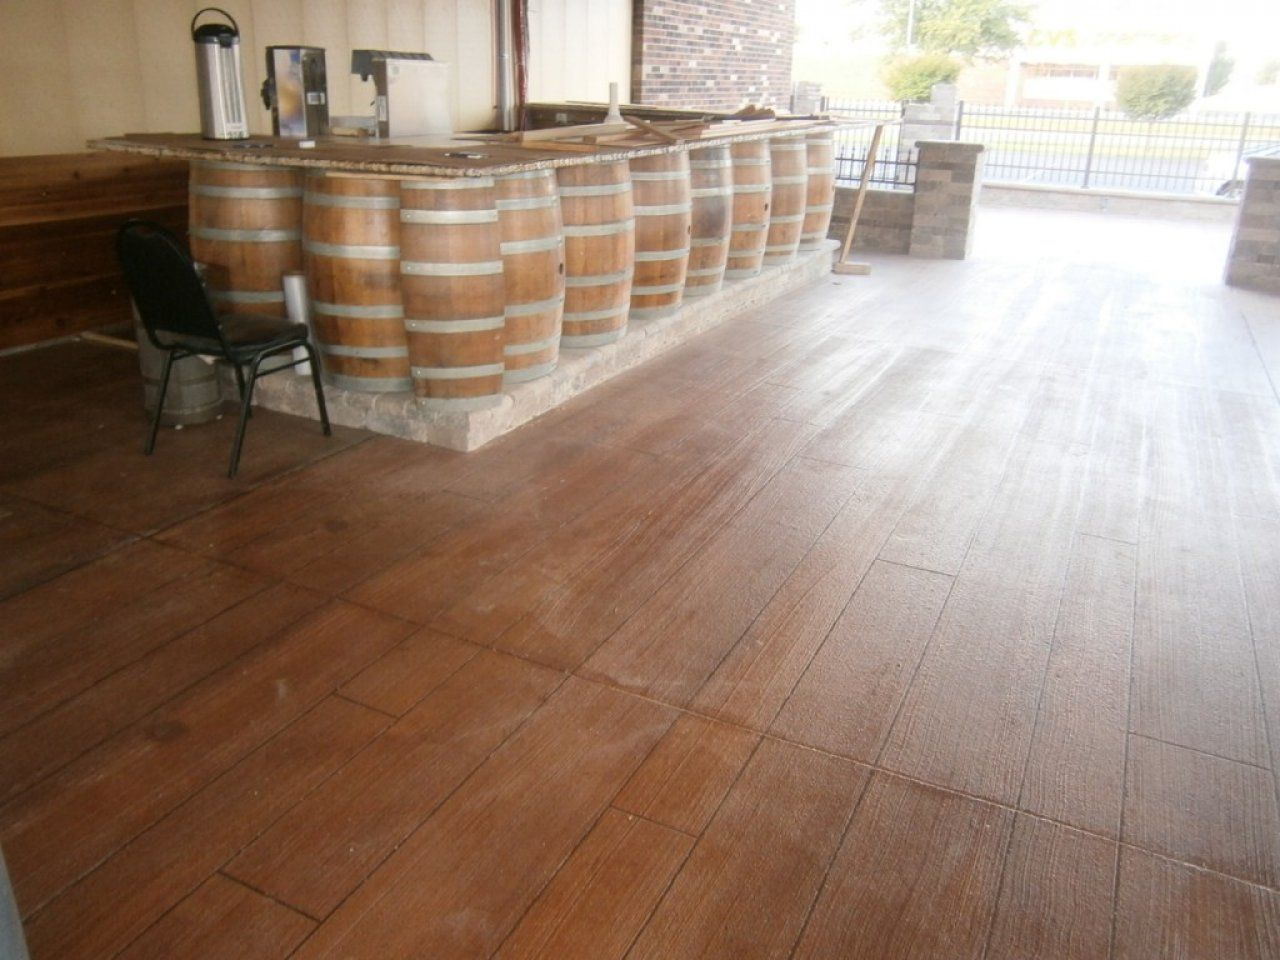 Concrete Wood is great for residential and commercial